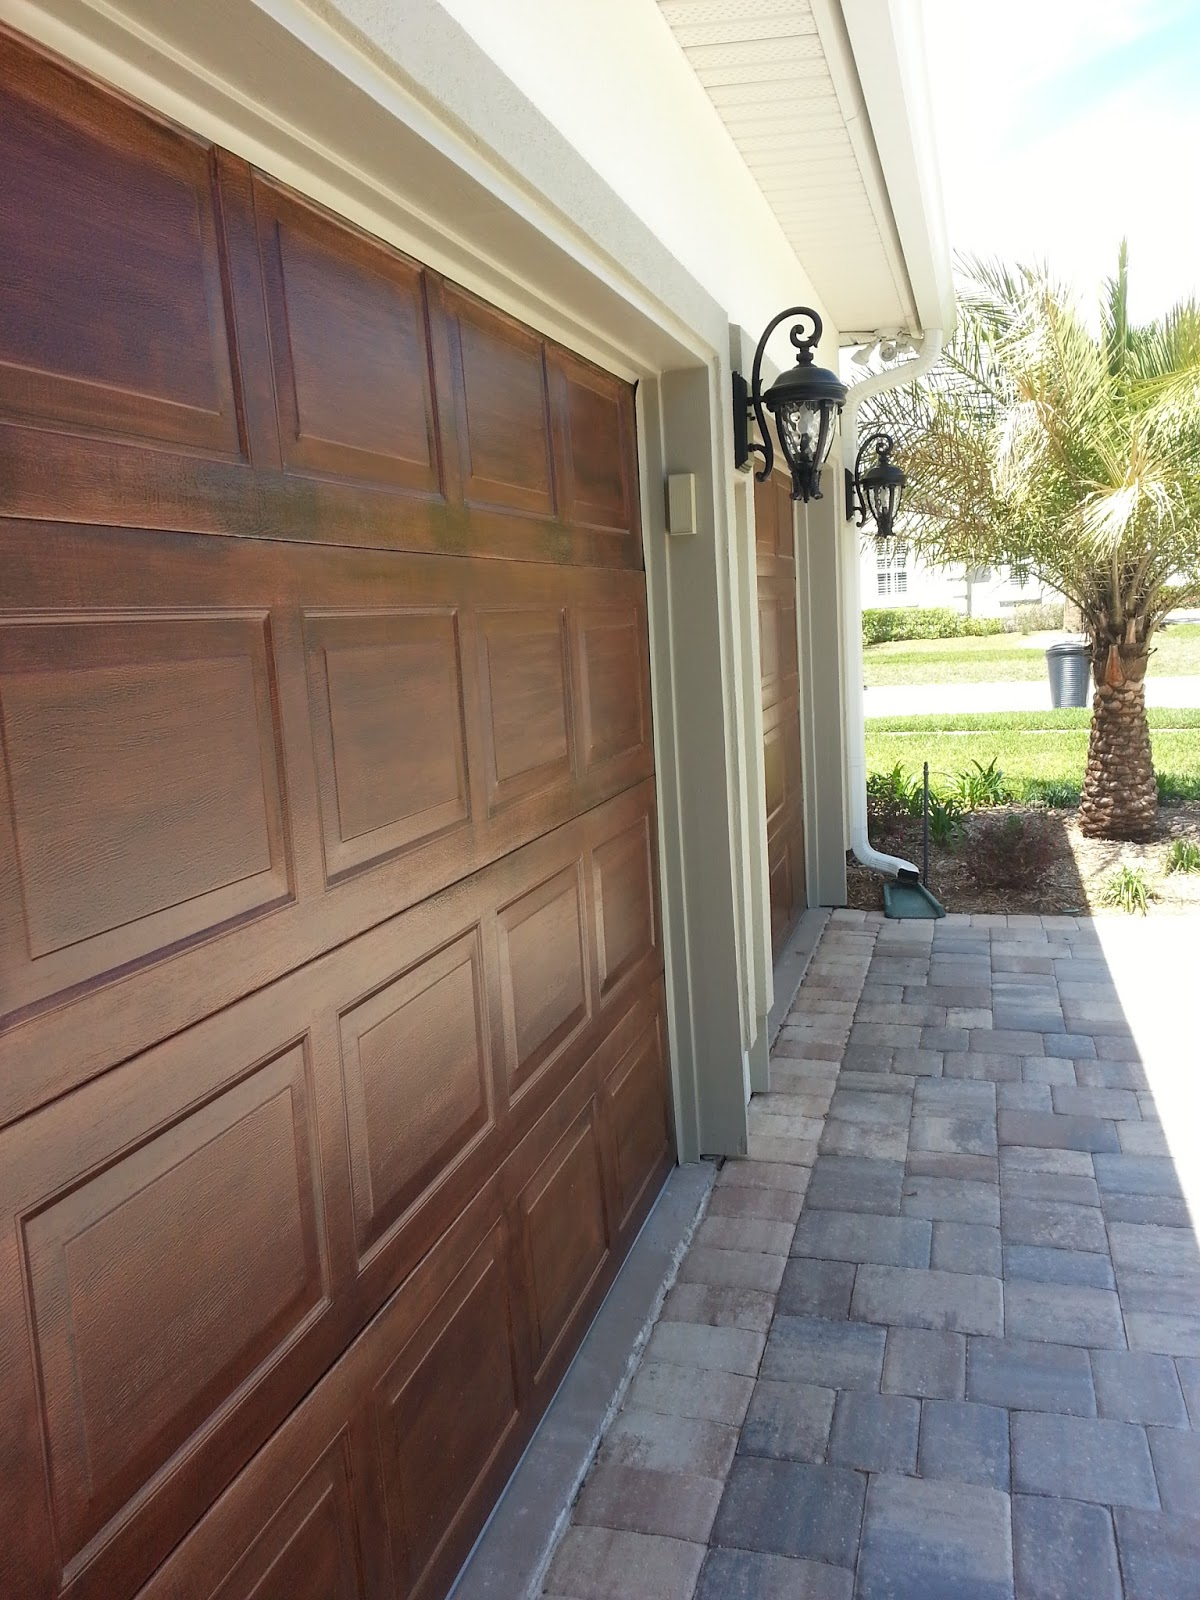 Commercial Gate Repair Hollywood California 91003 For Installing An Electric Garage Door Opener Residential Doors Venice